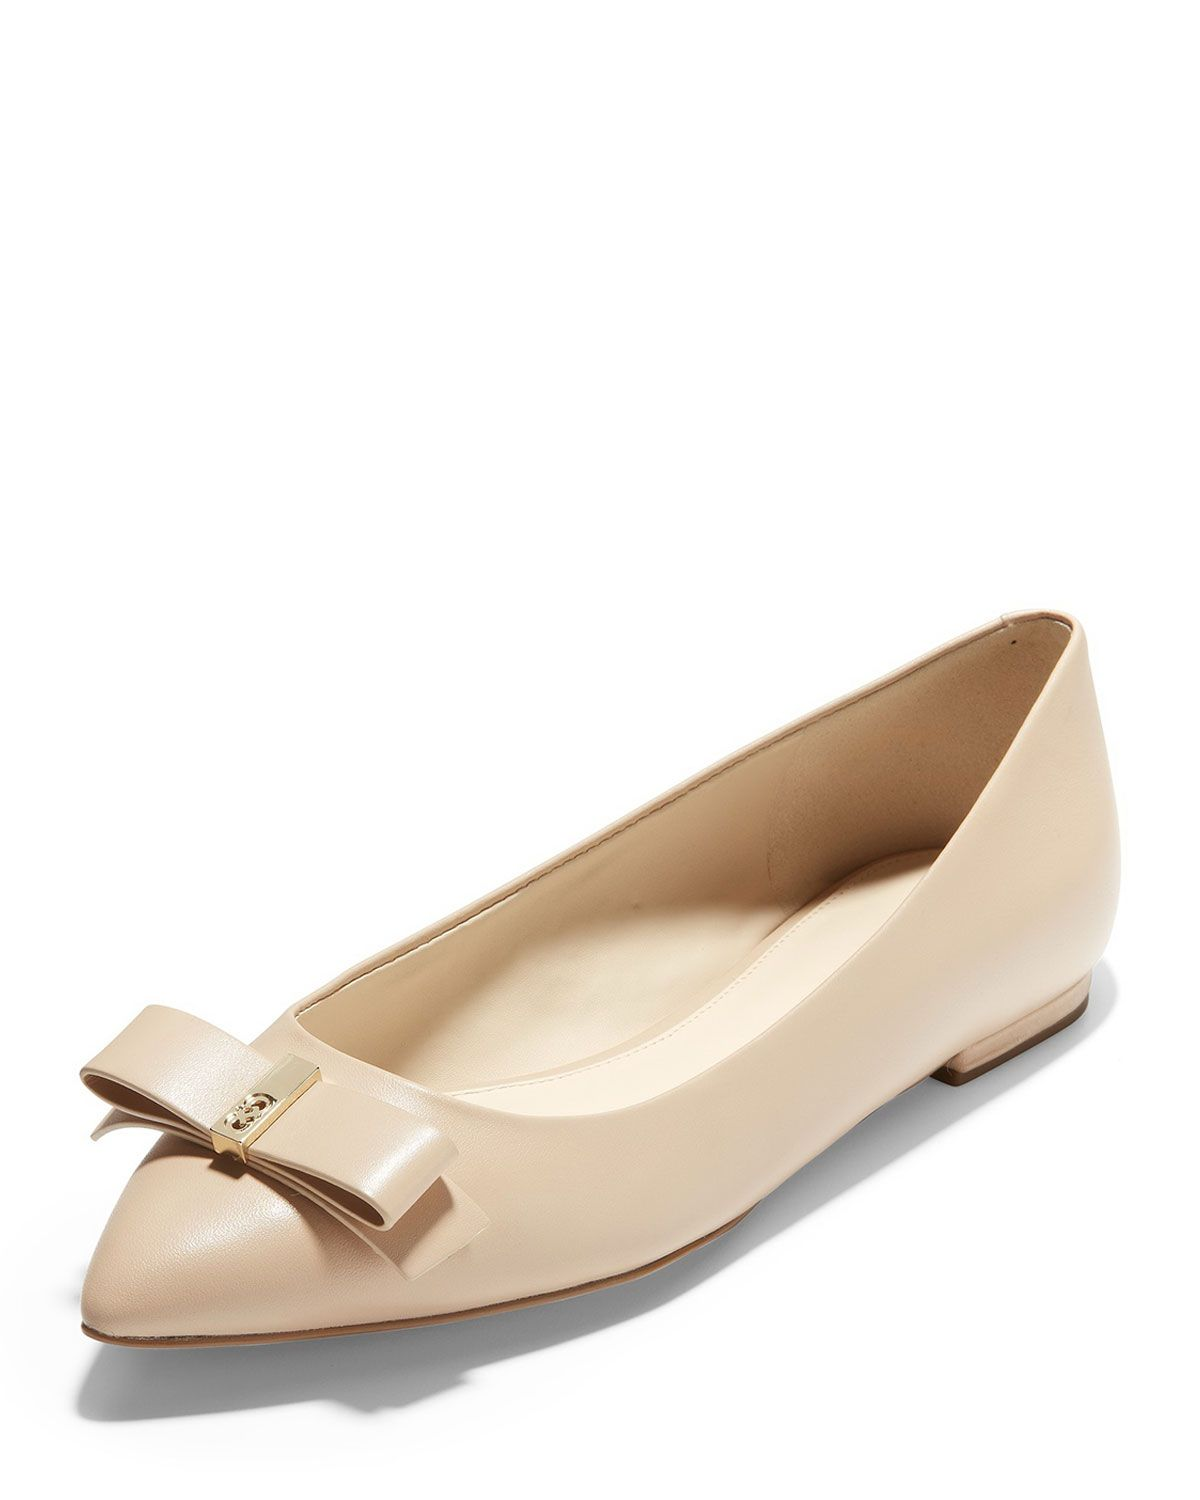 33119b8ca33 COLE HAAN ELSIE BOW LEATHER SKIMMER FLATS, NUDE. #colehaan #shoes ...